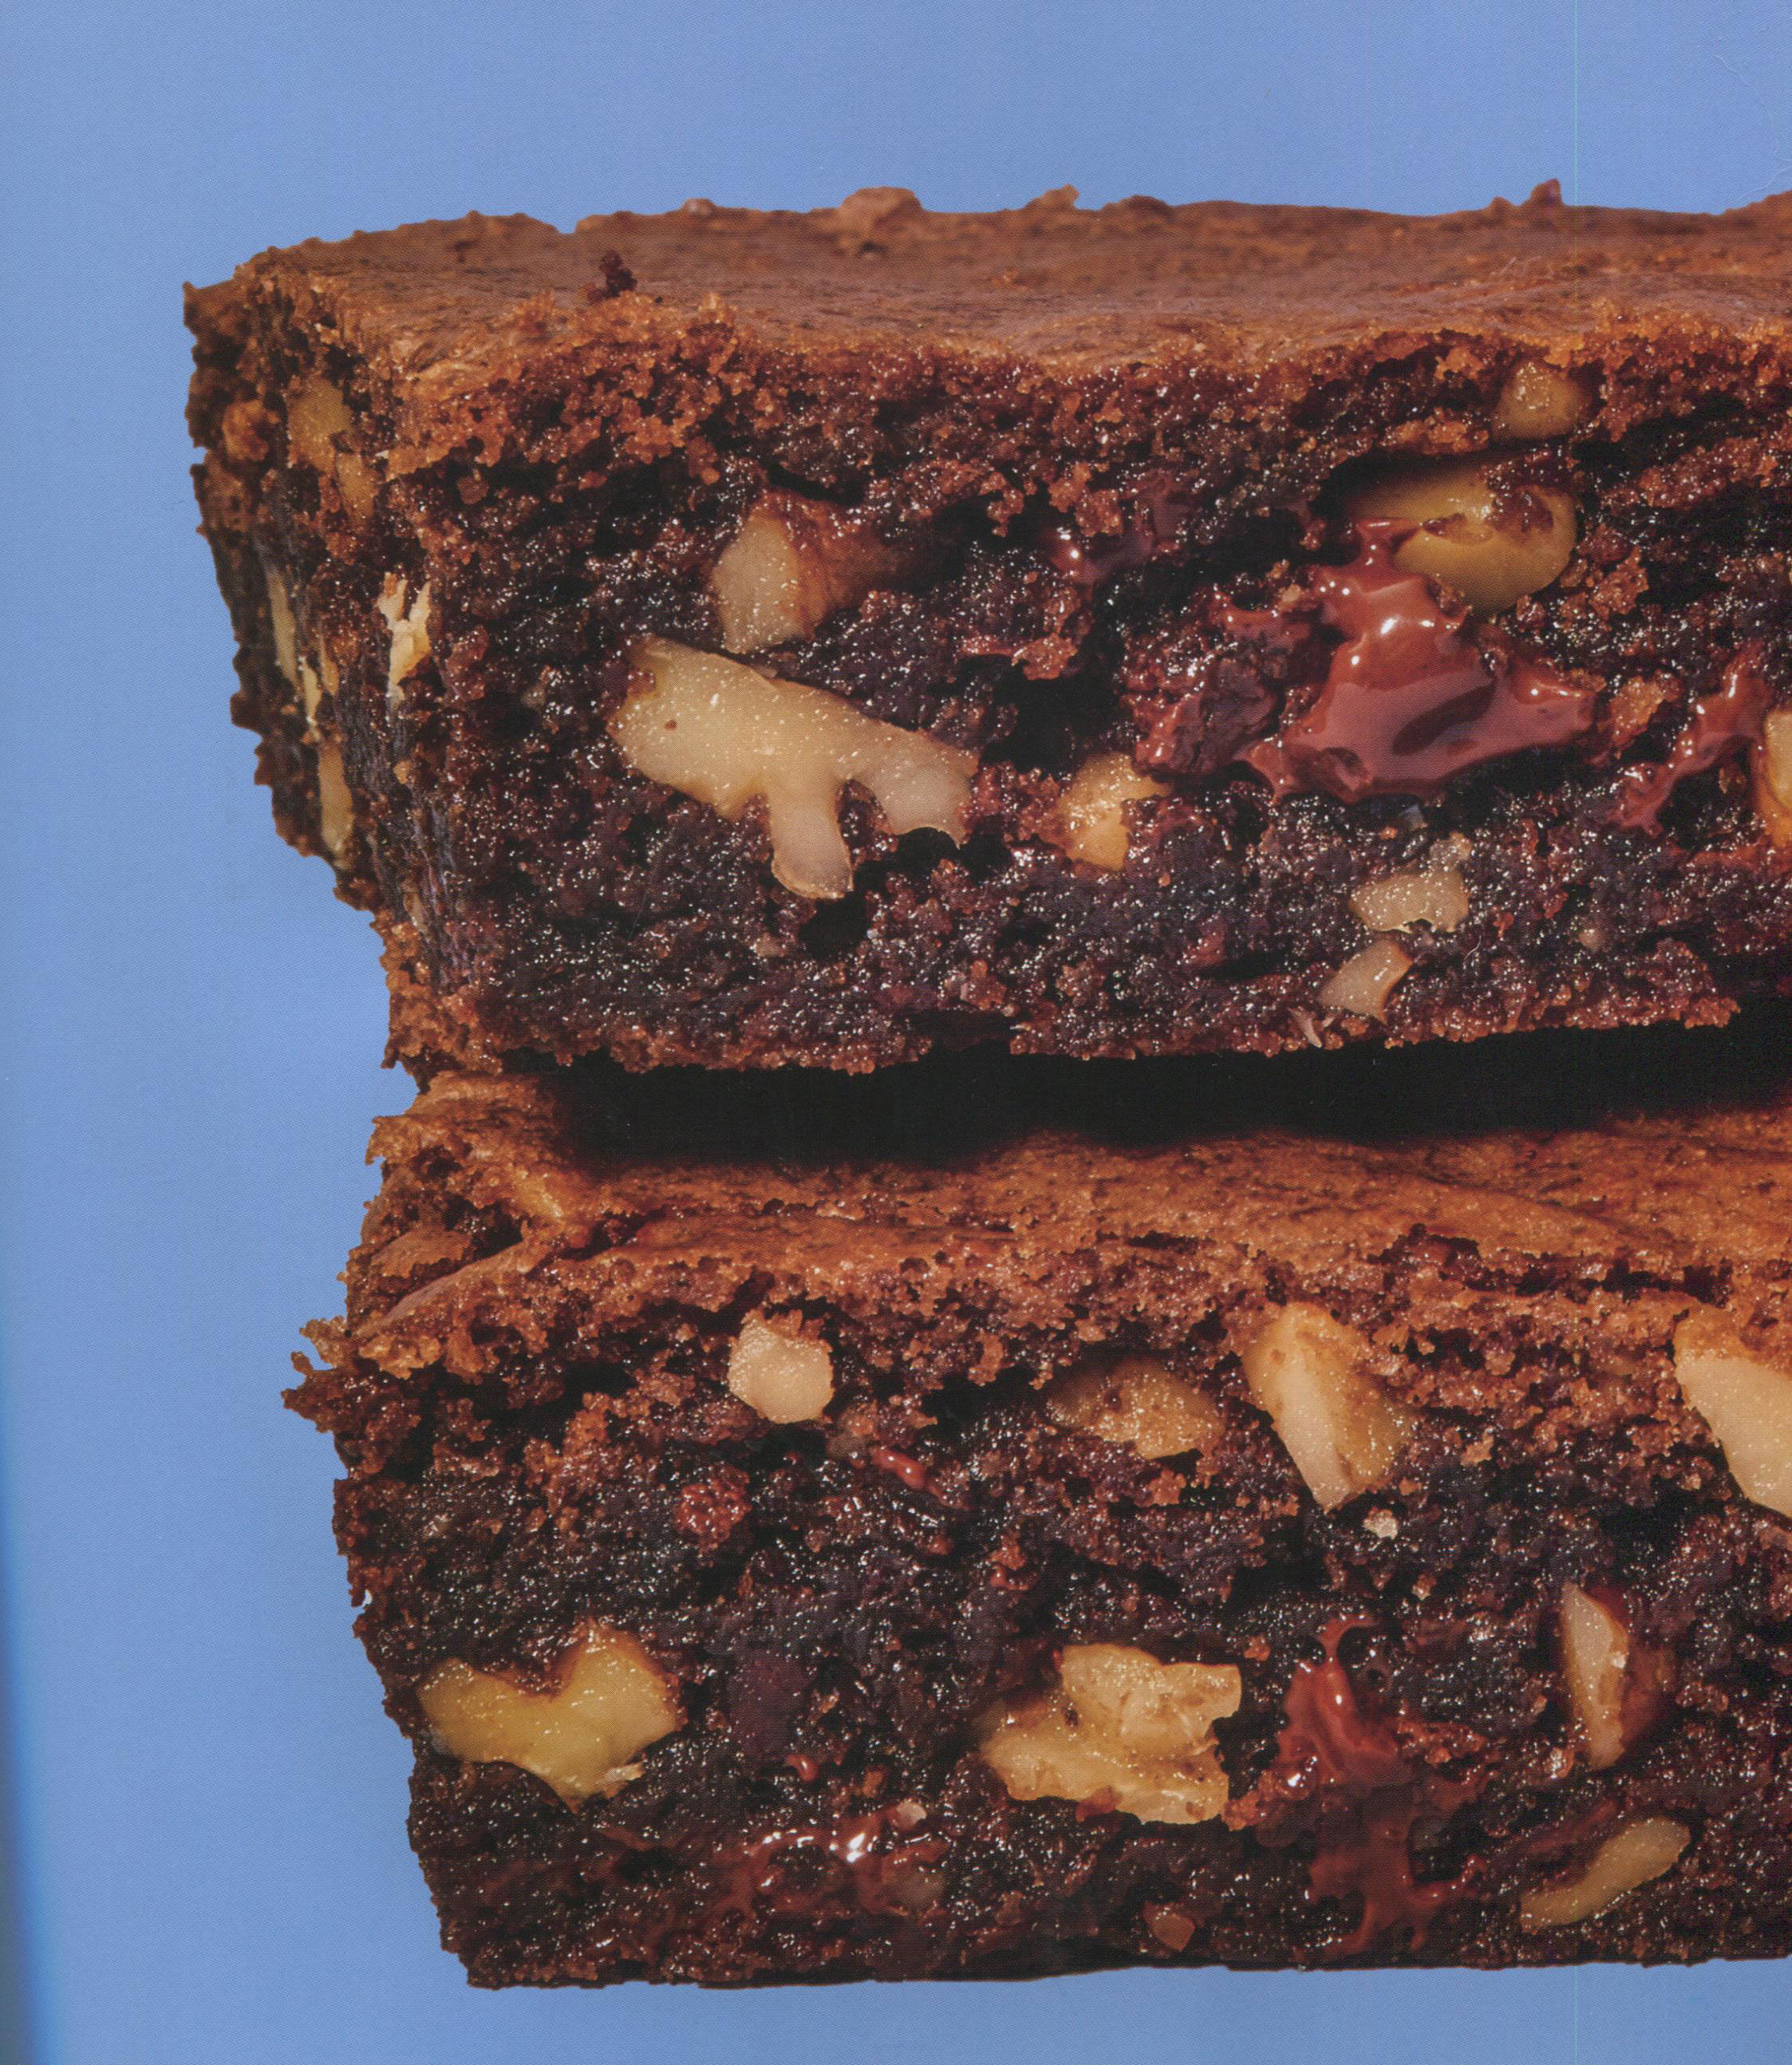 TBT Recipe: Fudgy Mocha Bars from Dorie Greenspan